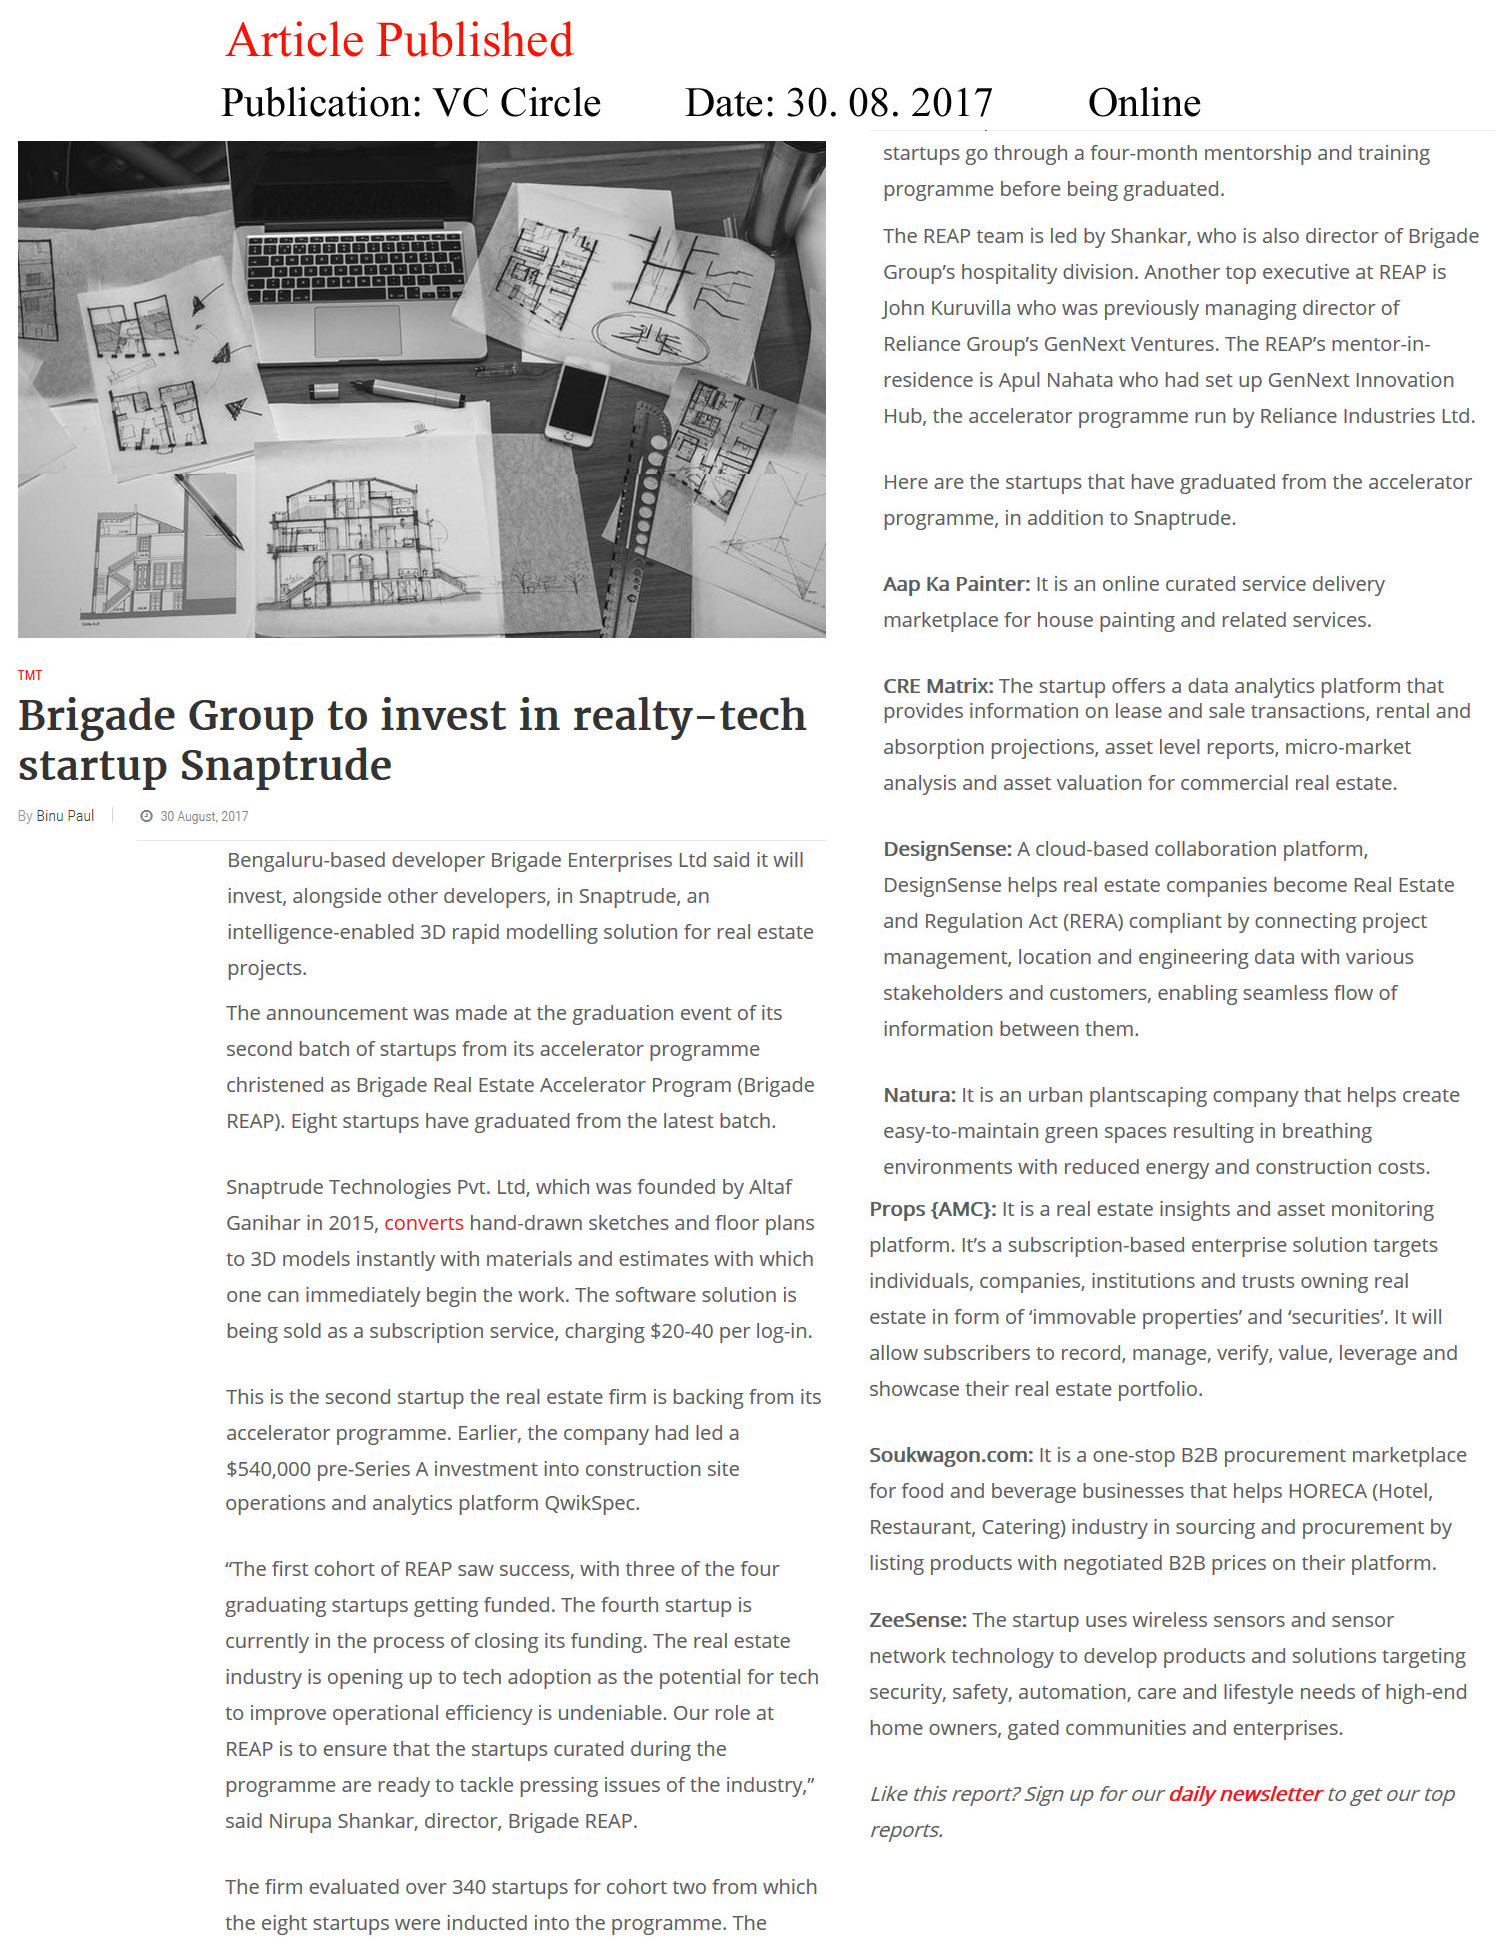 Brigade Group to invest in realty-tech startup Snaptrude—VC Circle-Online